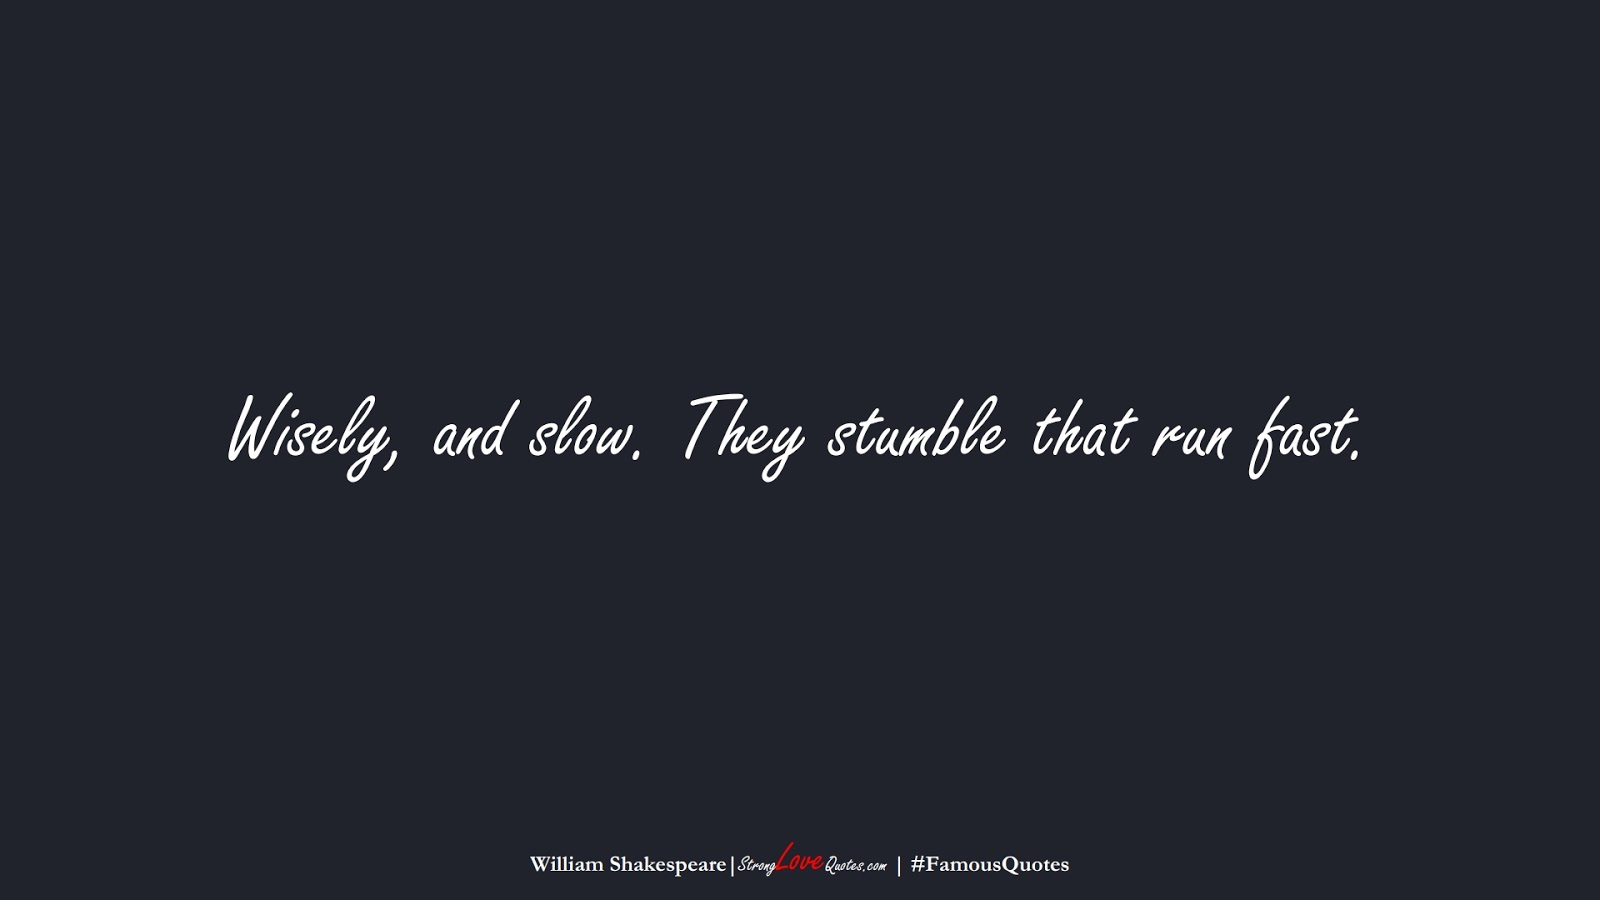 Wisely, and slow. They stumble that run fast. (William Shakespeare);  #FamousQuotes